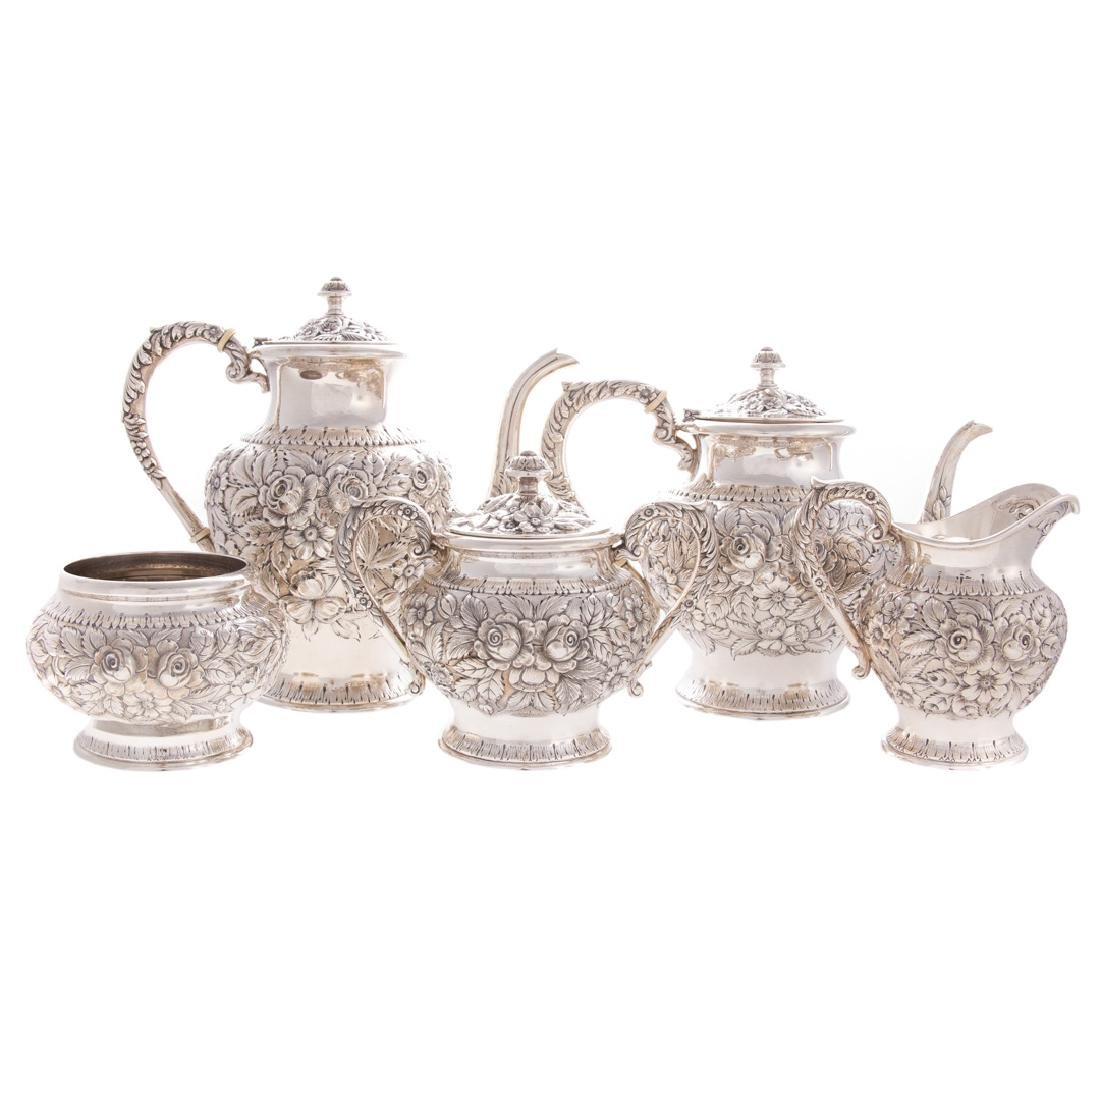 Kirk repousse sterling 5-pc coffee & tea service